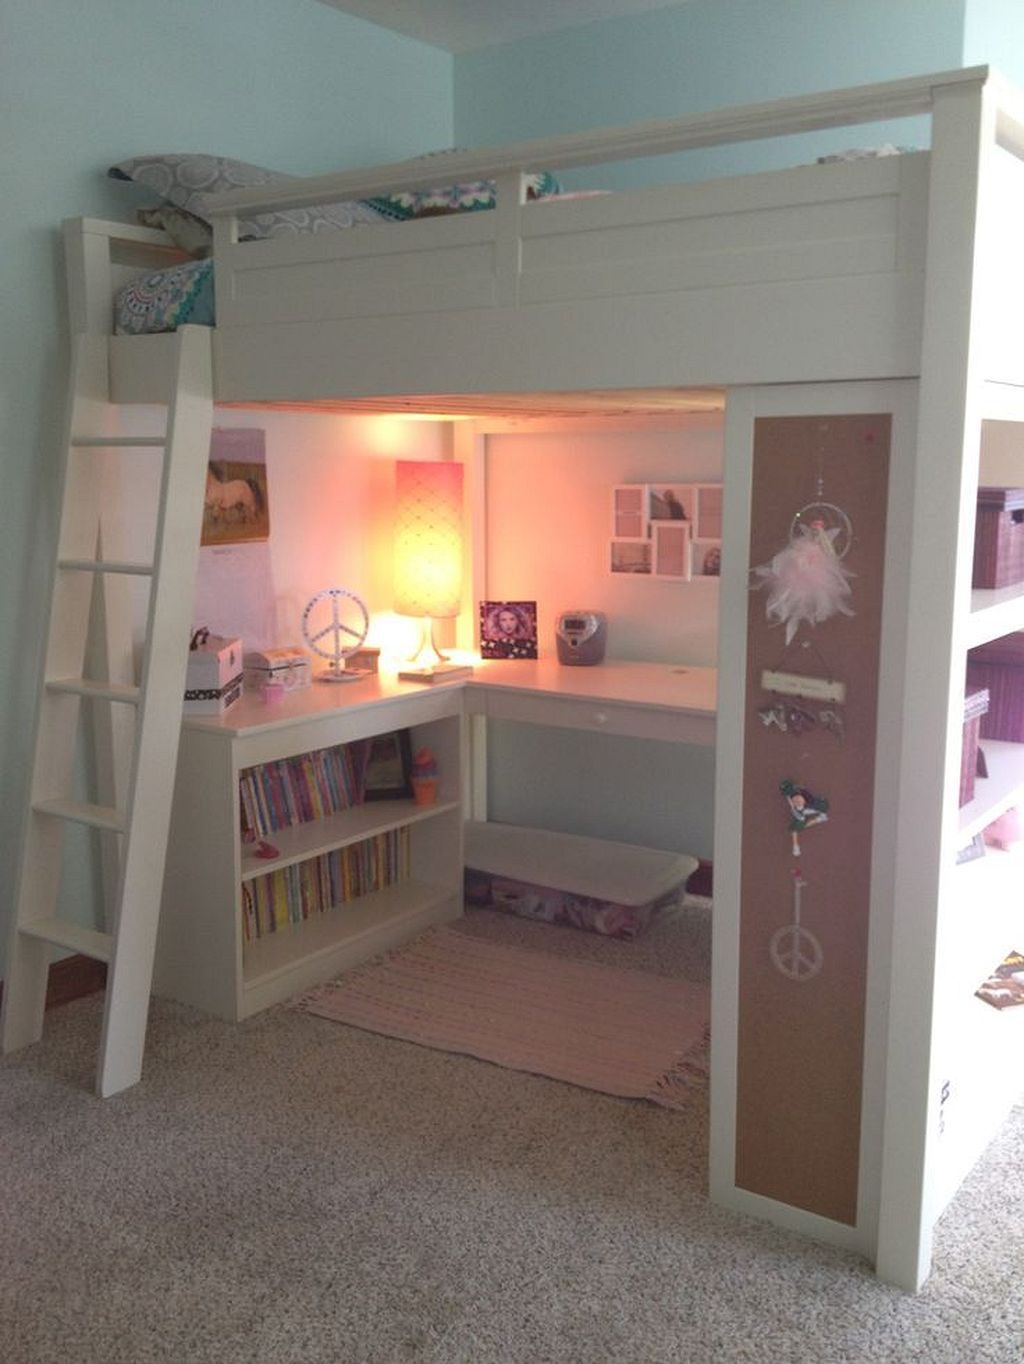 27 Fabulous Girls Bedroom Ideas to Realize Their Dreamy Space is part of Room decor, Girl room, Bedroom loft, Kids bedroom, Girls bedroom, Bed - Teen Girl's Bedroom Ideas   Beyond a room to sleep, teen girls define a bedroom as a place where they can express their feelings, thoughts, and hobbies  When parents were going find some girls bedroom ideas, you must remember to choose based on what kind of decoration that your girls love  There are countless bedroom ideas to opt for, consider your teens' perspective to design their favorite bedroom  In fact, a bedroom reflects their personality  All ideas can be tied together to create a comfy bedroom  Teen girls are conscious of uptodate styles yet still love toys  They look for